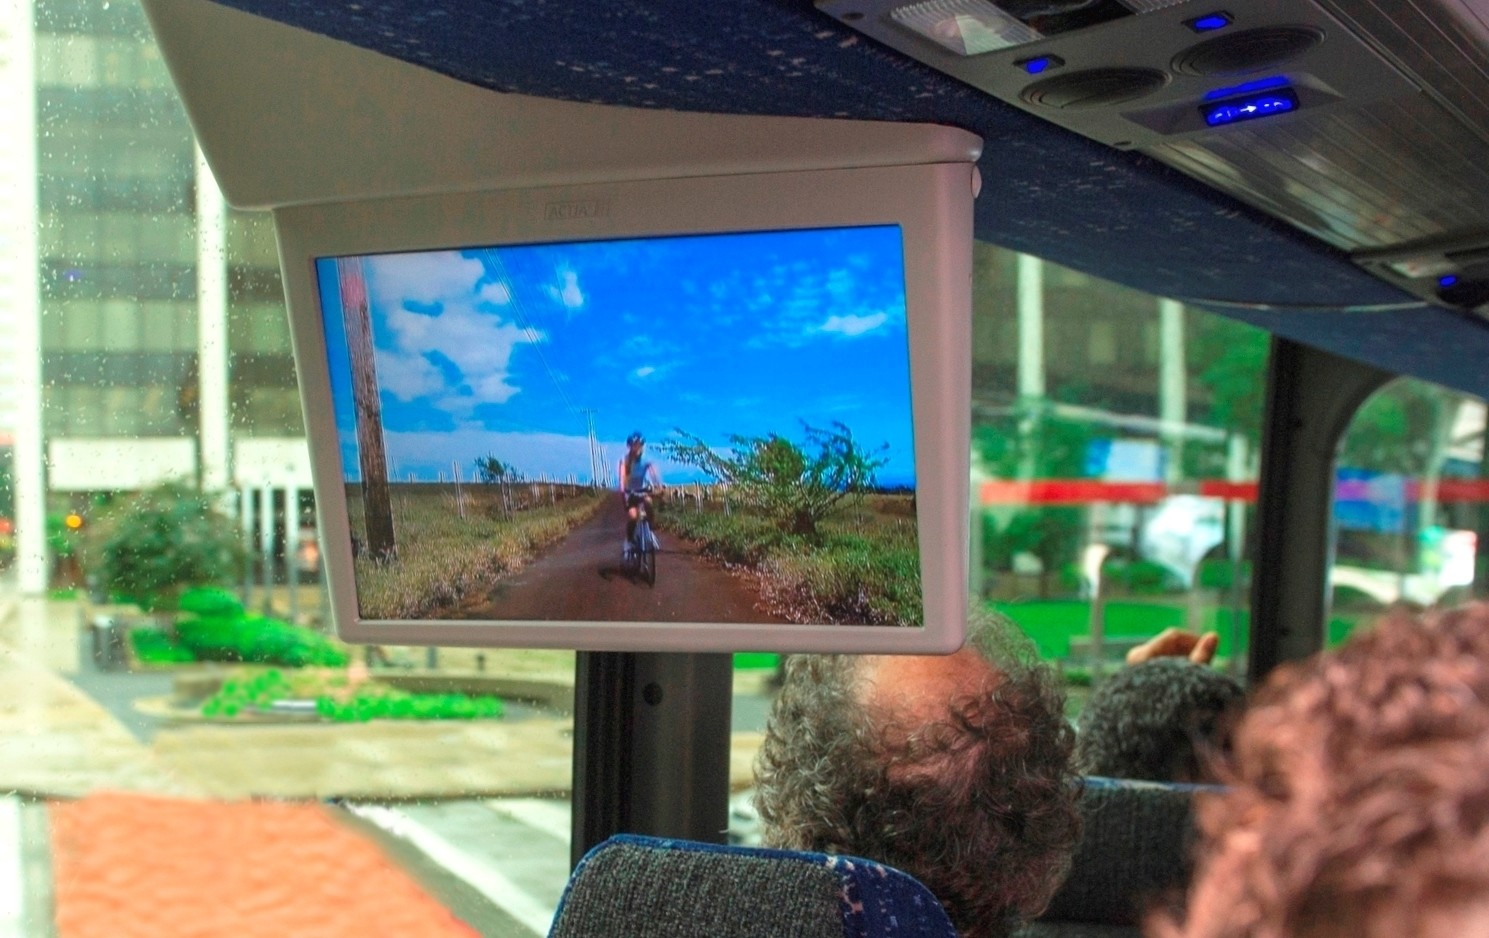 Experts watch videos on a bus via ATSC 3.0 signals